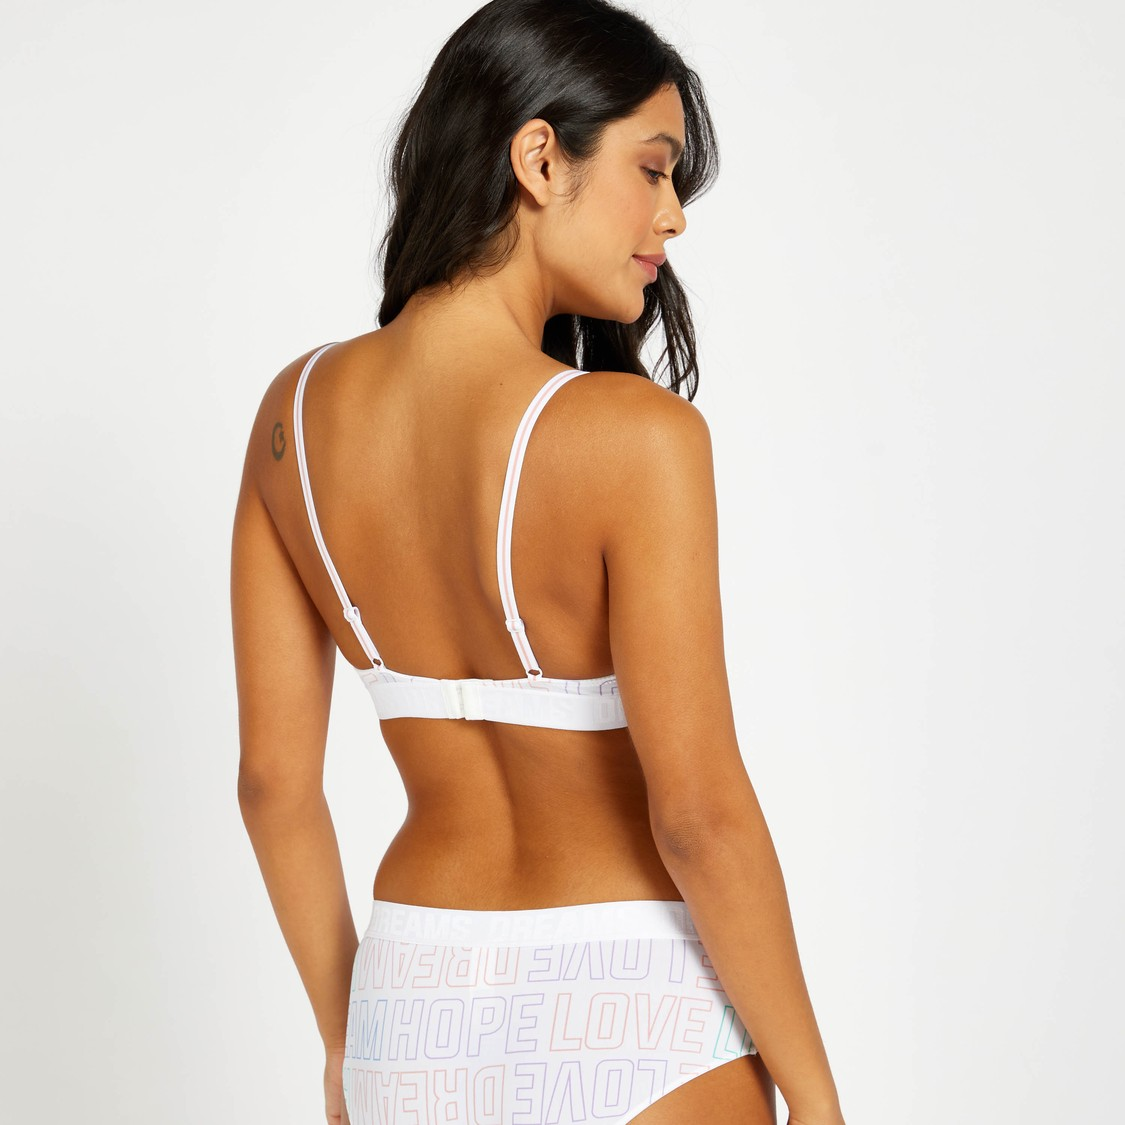 All-Over Text Print Padded Plunge Bra with Hook and Eye Closure